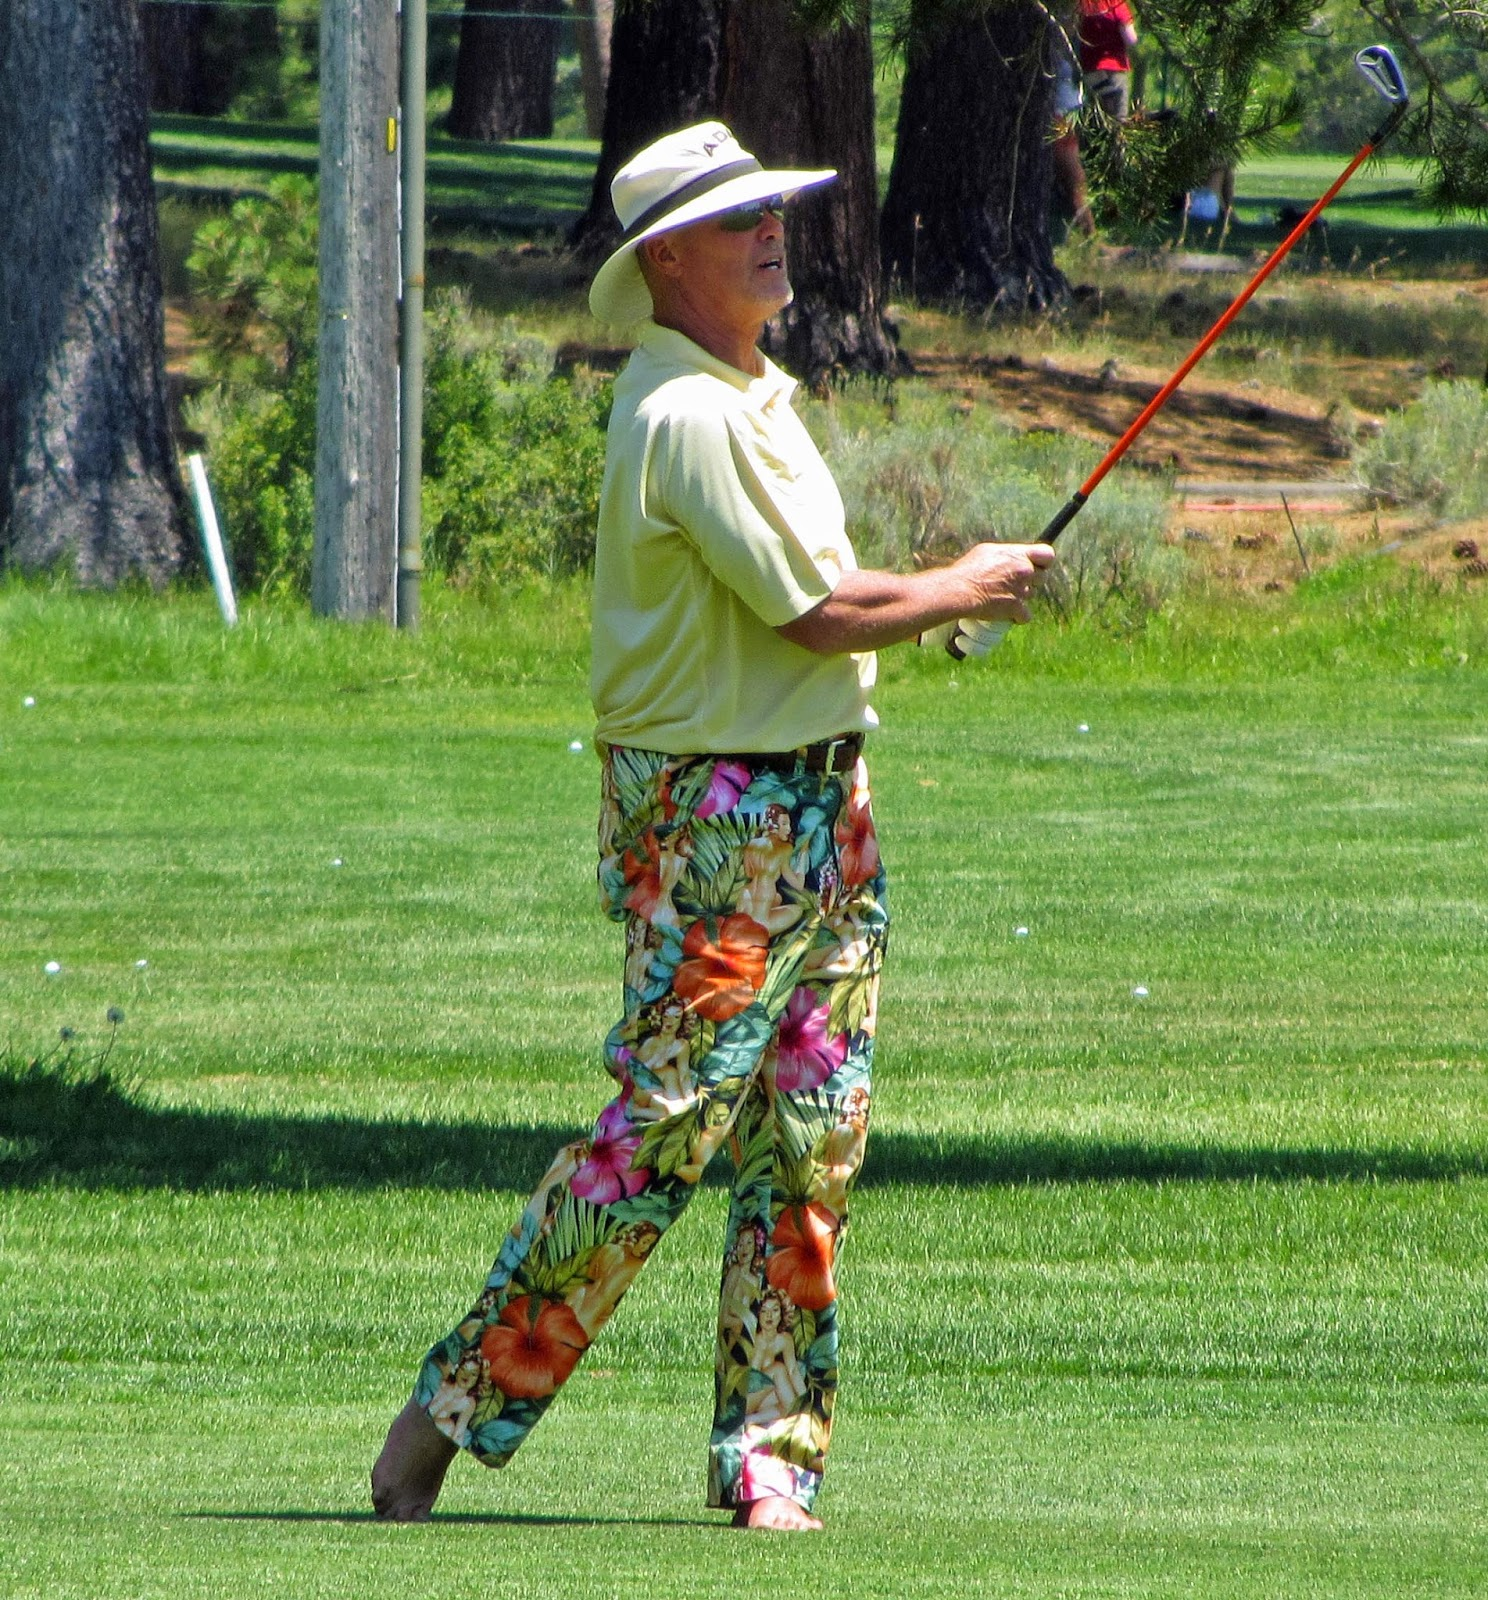 Gene Upshaw Memorial Golf Classic this Summer in Truckee